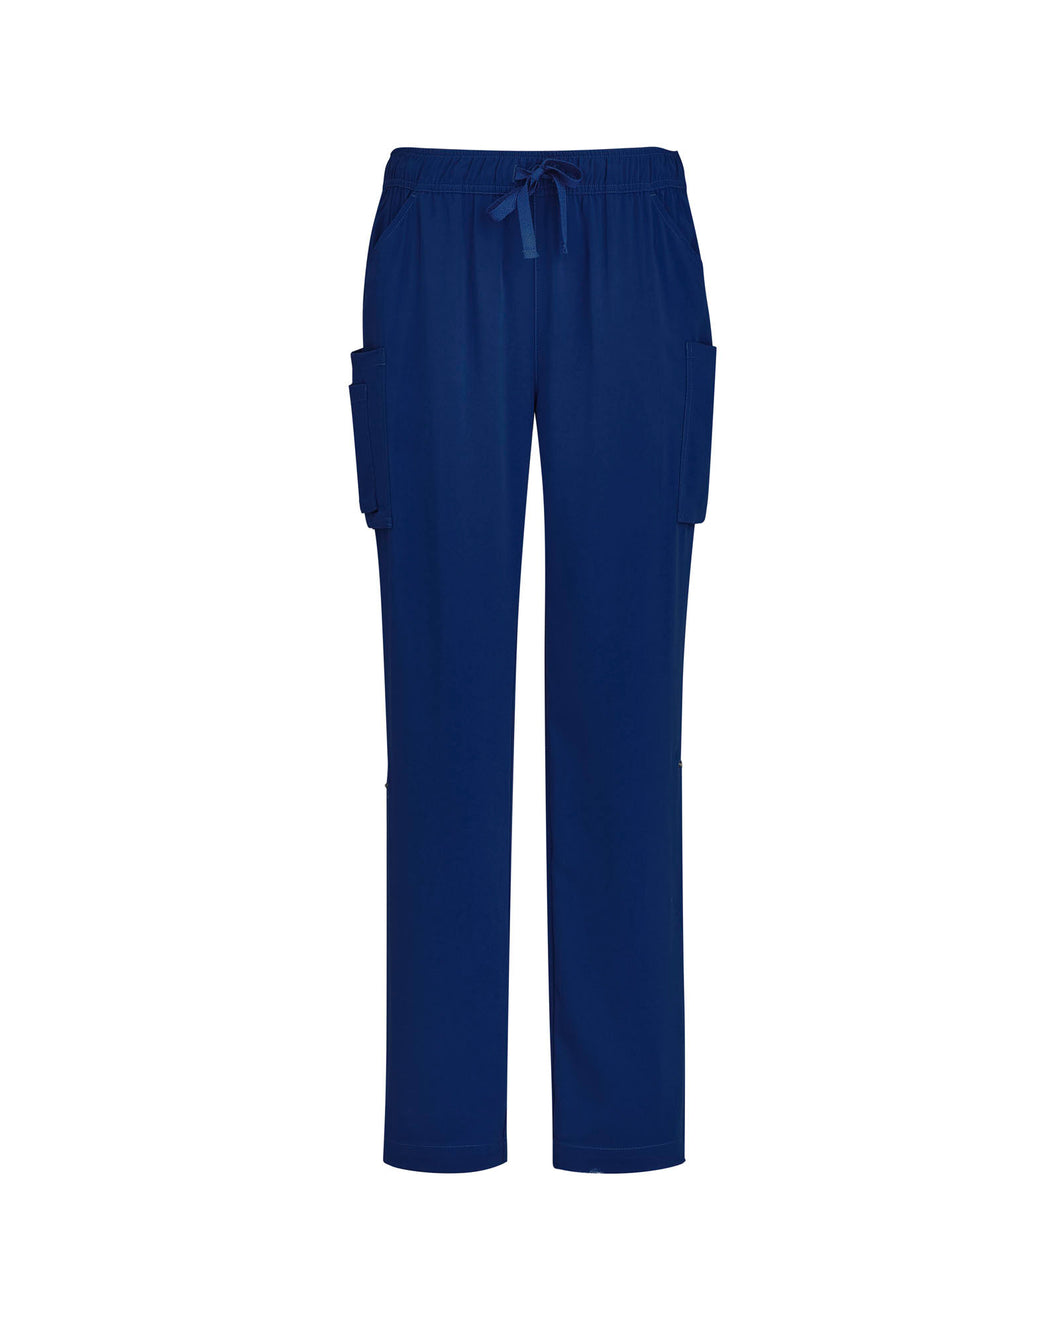 Women's Navy Straight Leg Scrub Pants